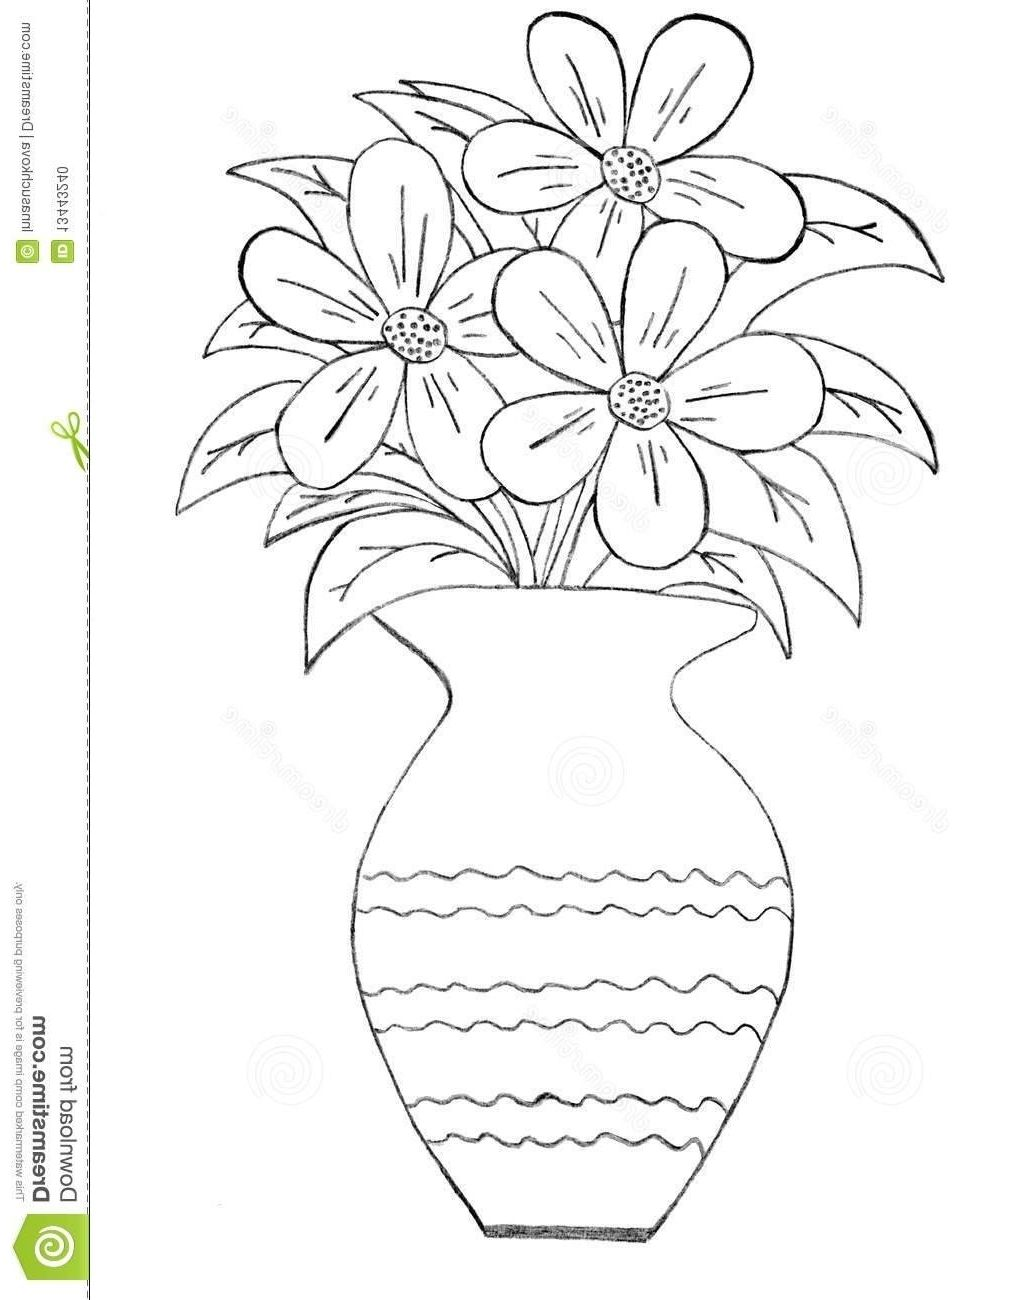 Sketch Images Flower vase drawing, Flower drawing